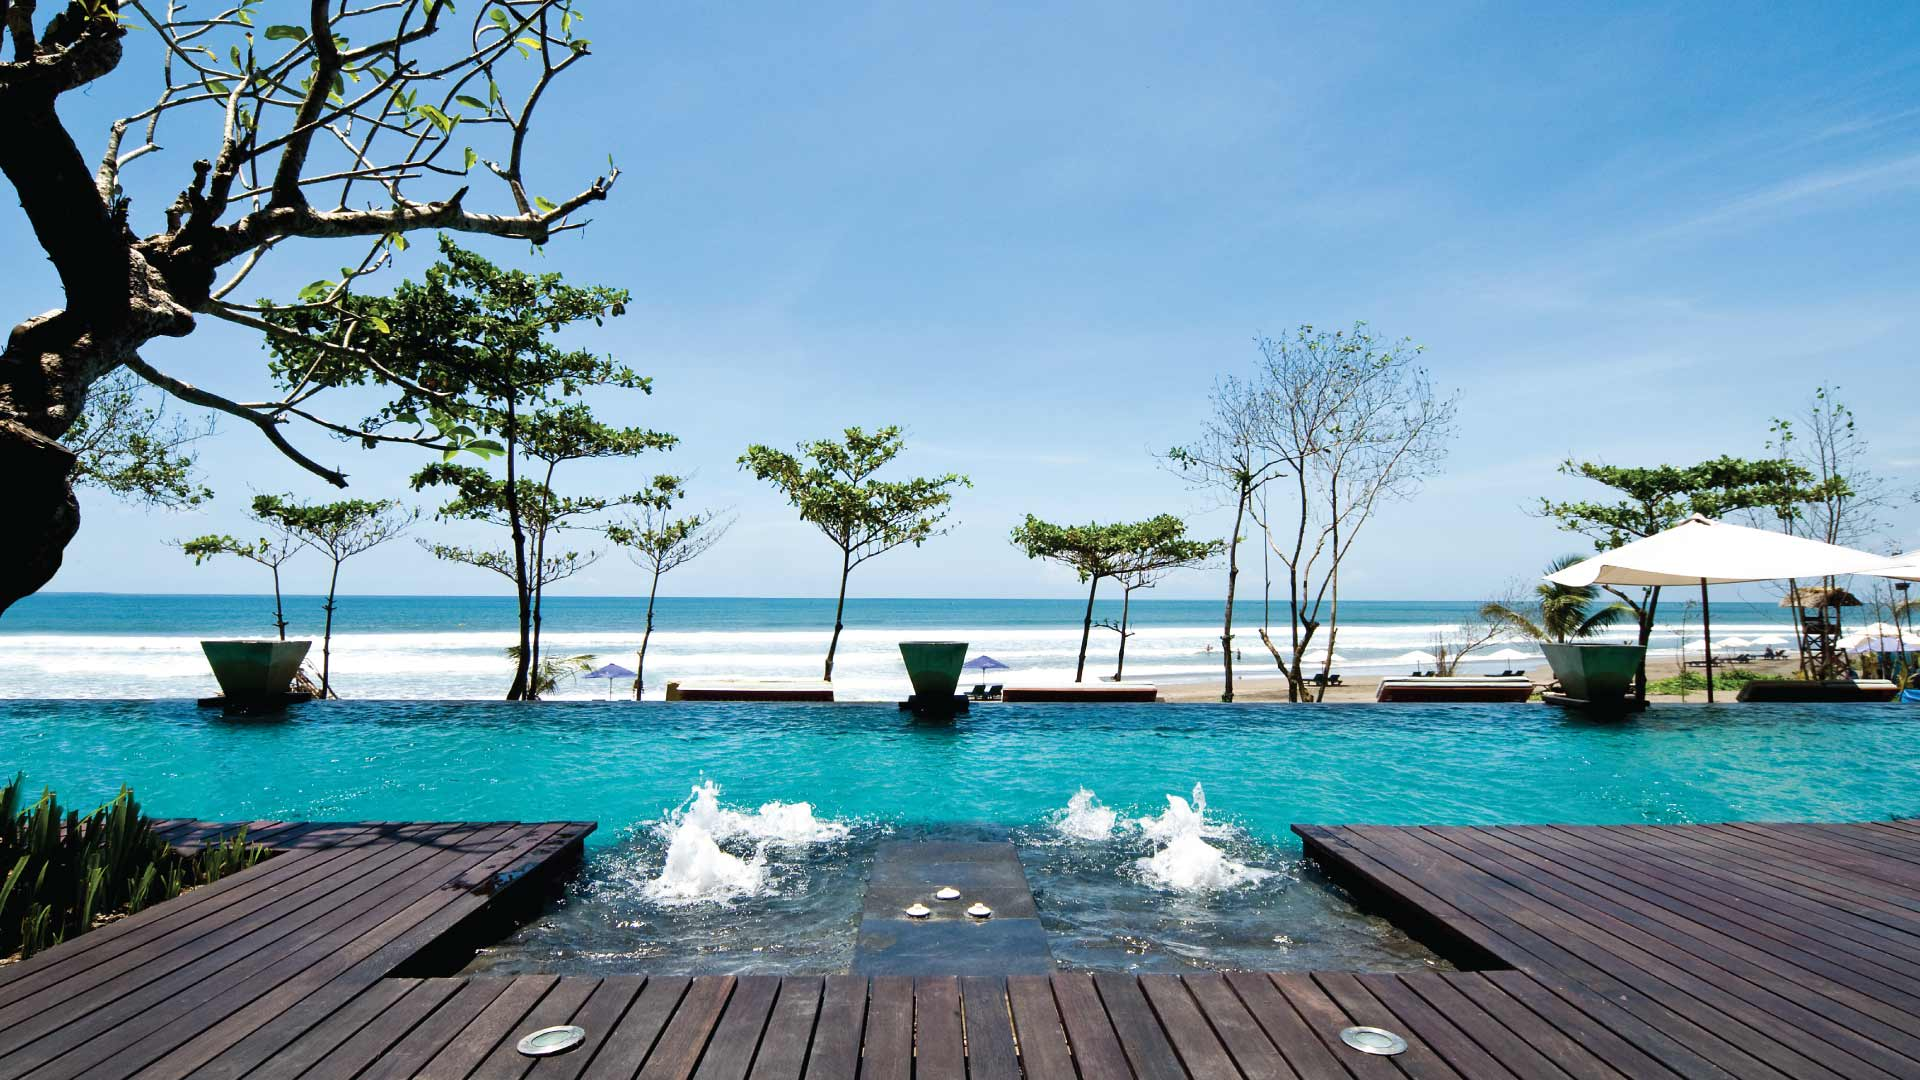 https://assets.anantara.com/image/upload/q_auto/media/minor/anantara/images/anantara-seminyak-bali-resort/the-resort/anantara_seminyak_infinity_edge_pool_header_1920x1080.jpg